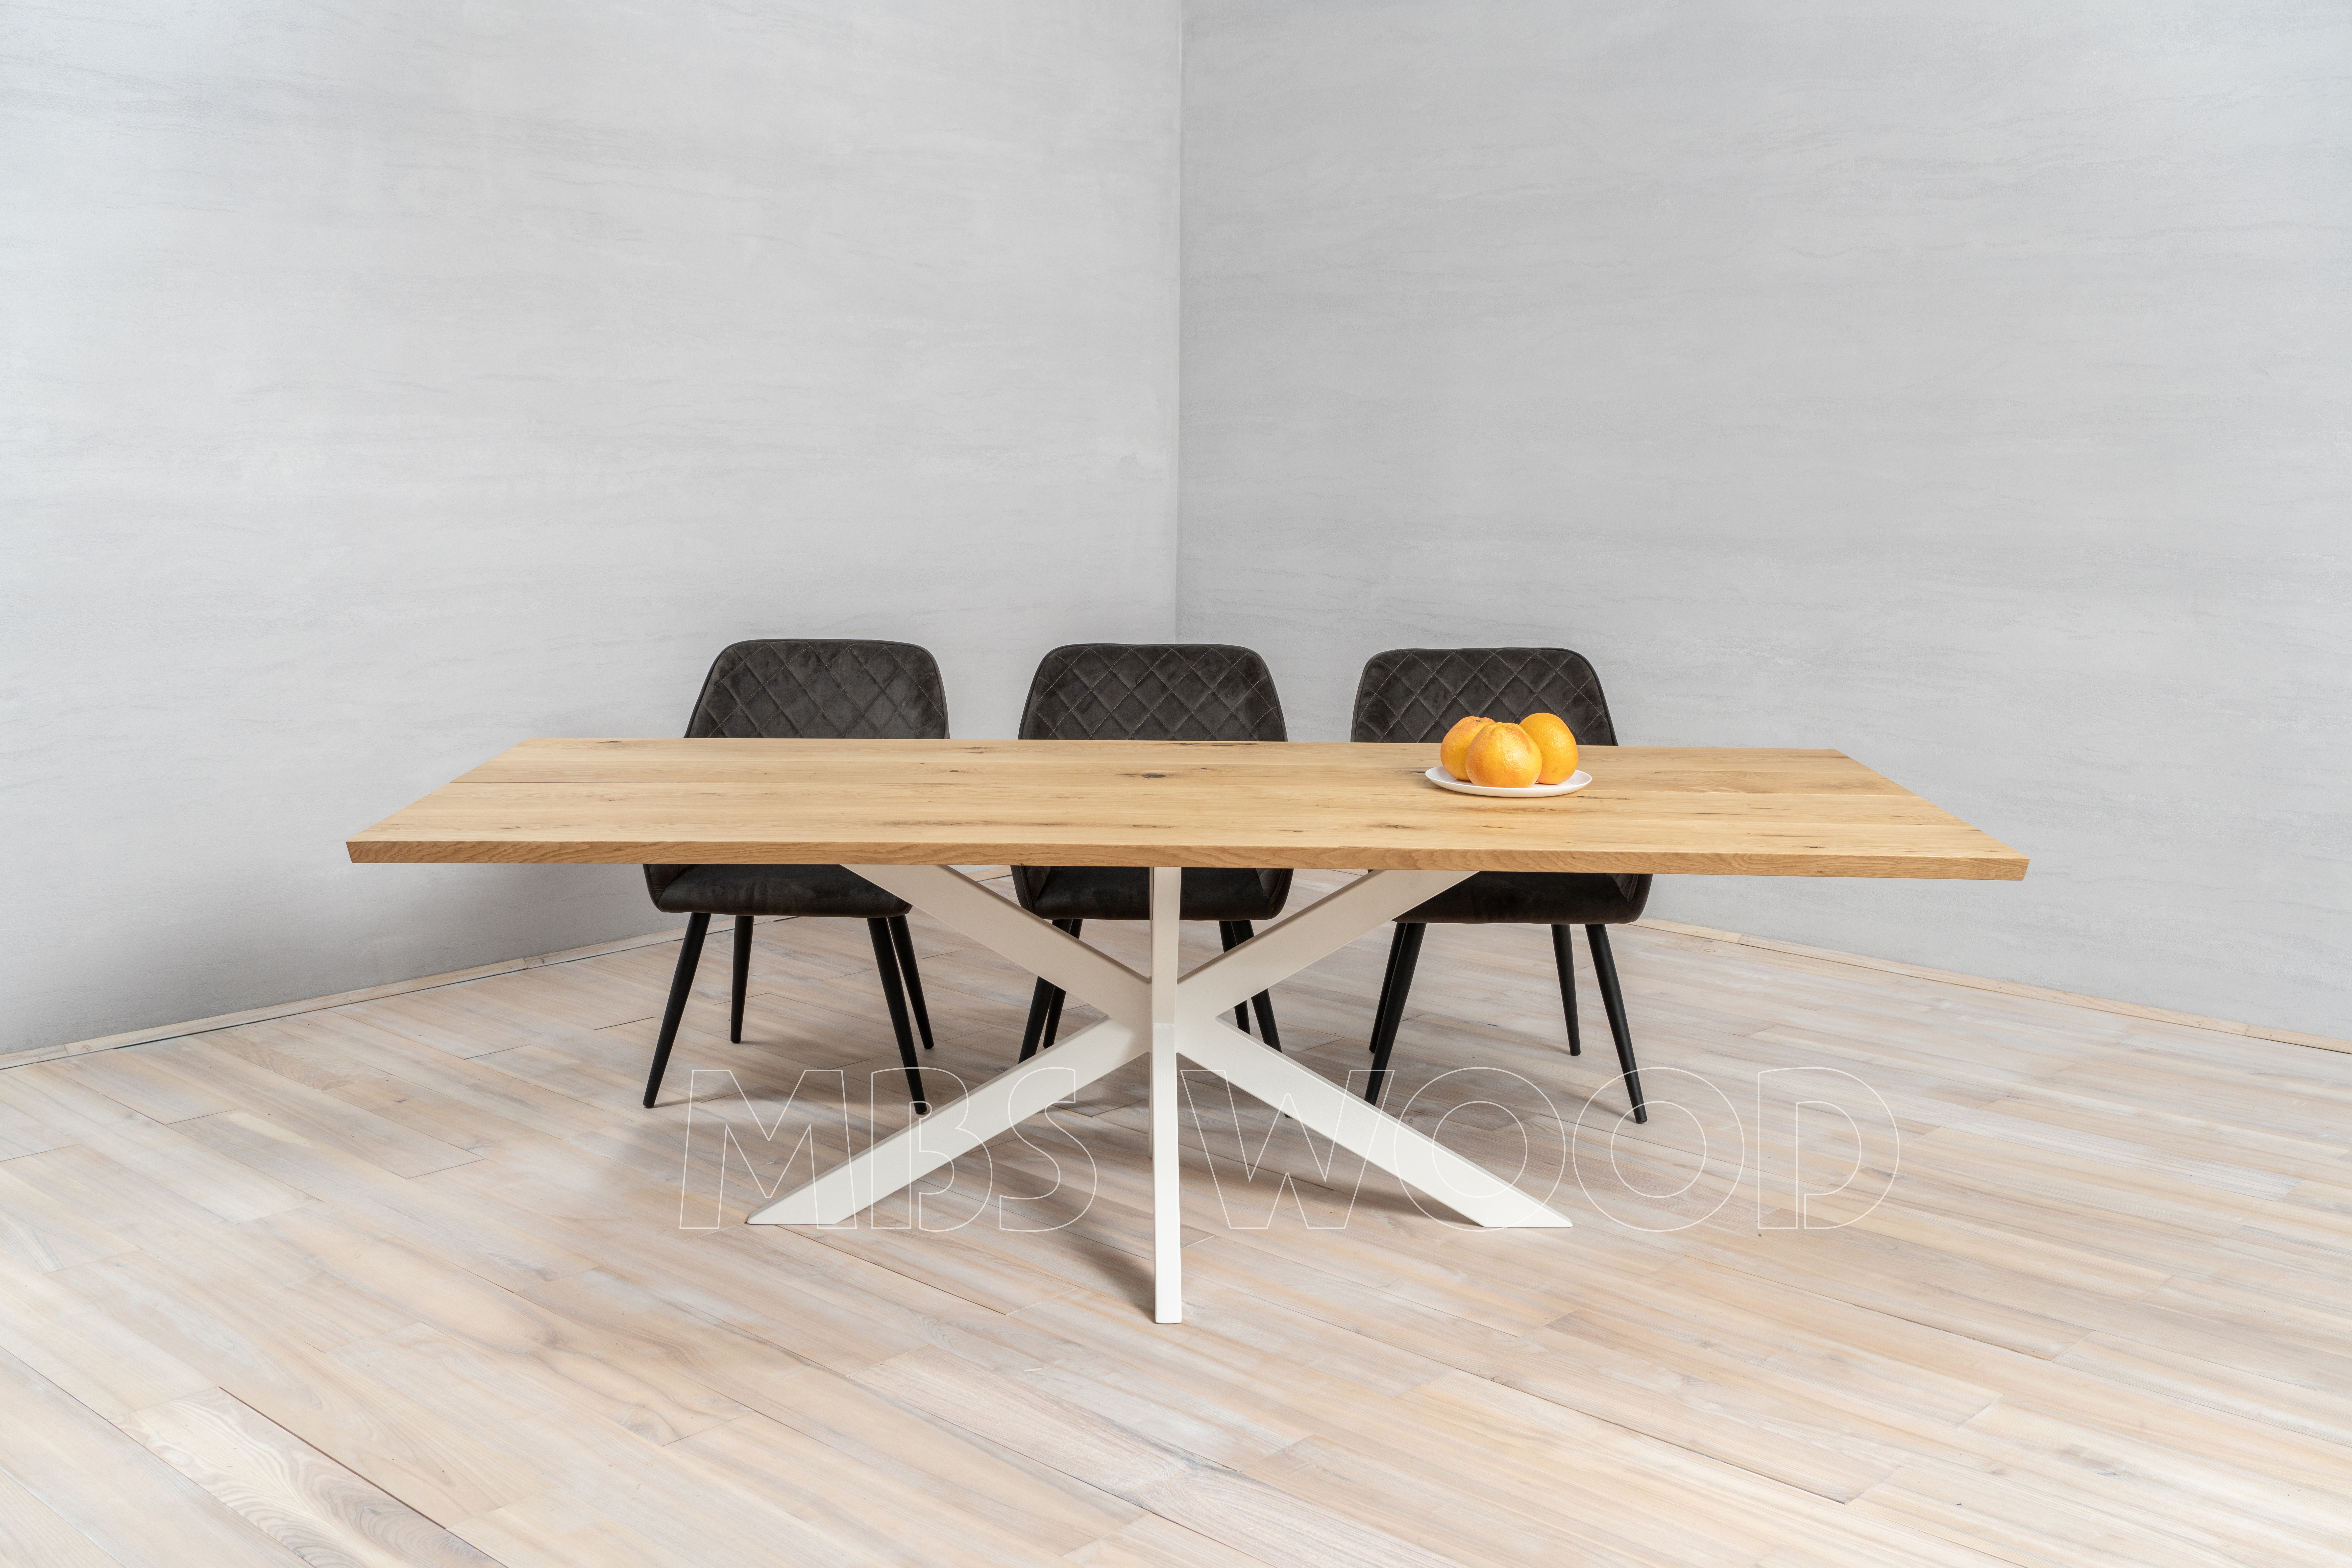 oak tables with metal legs spider^ color white